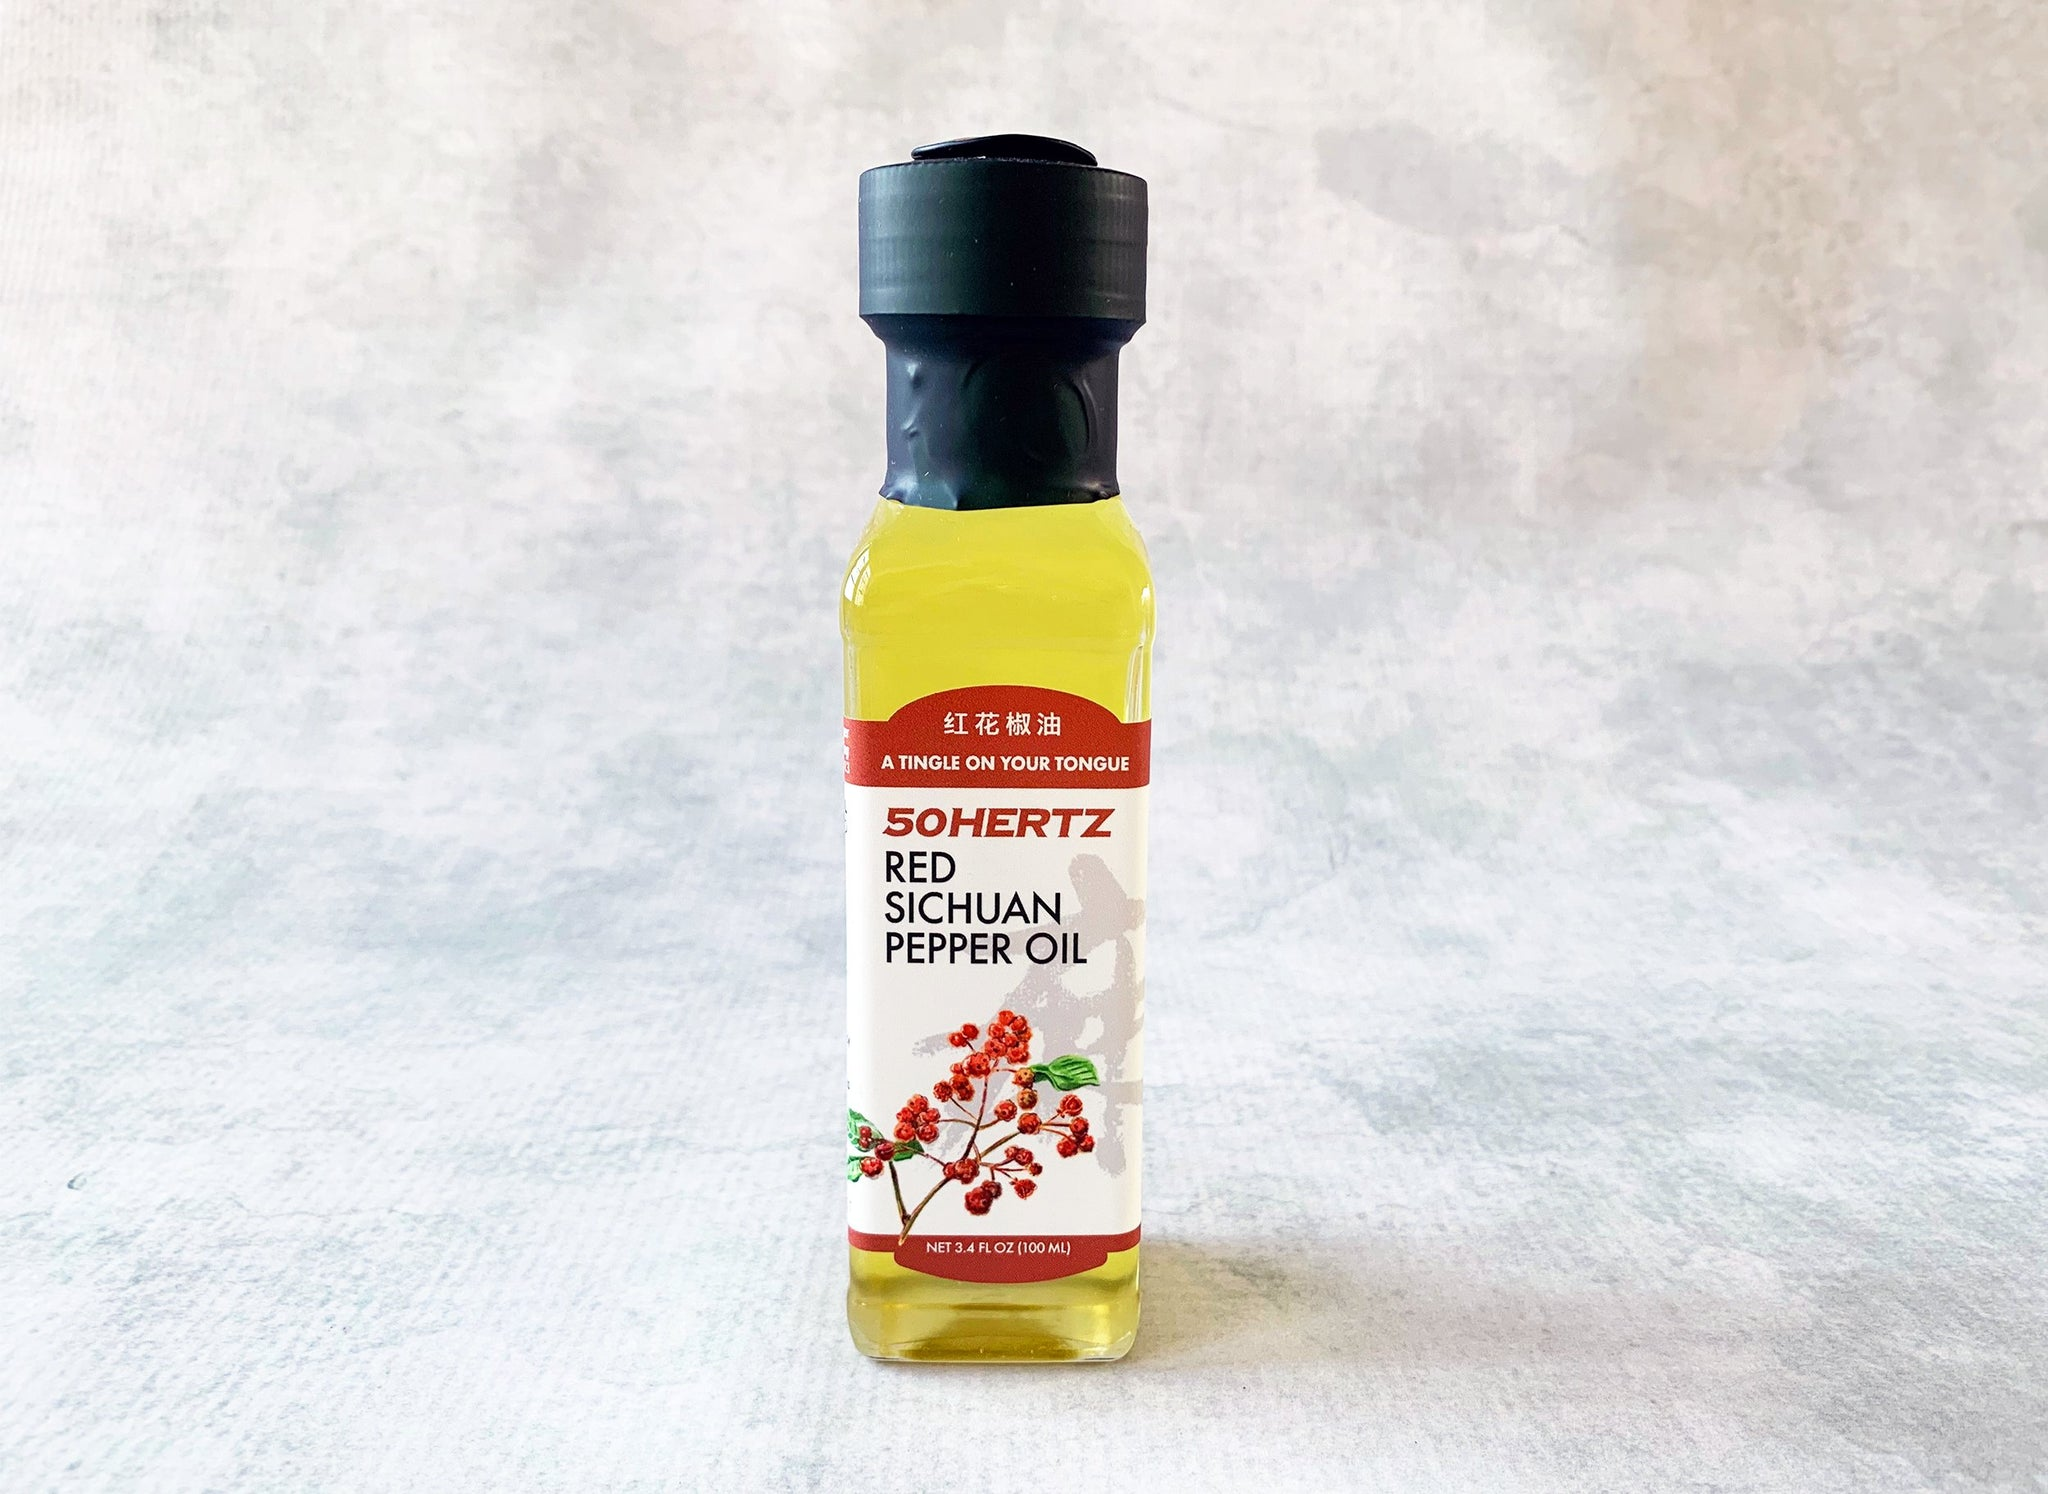 Red Sichuan Pepper Oil (50 Hertz)